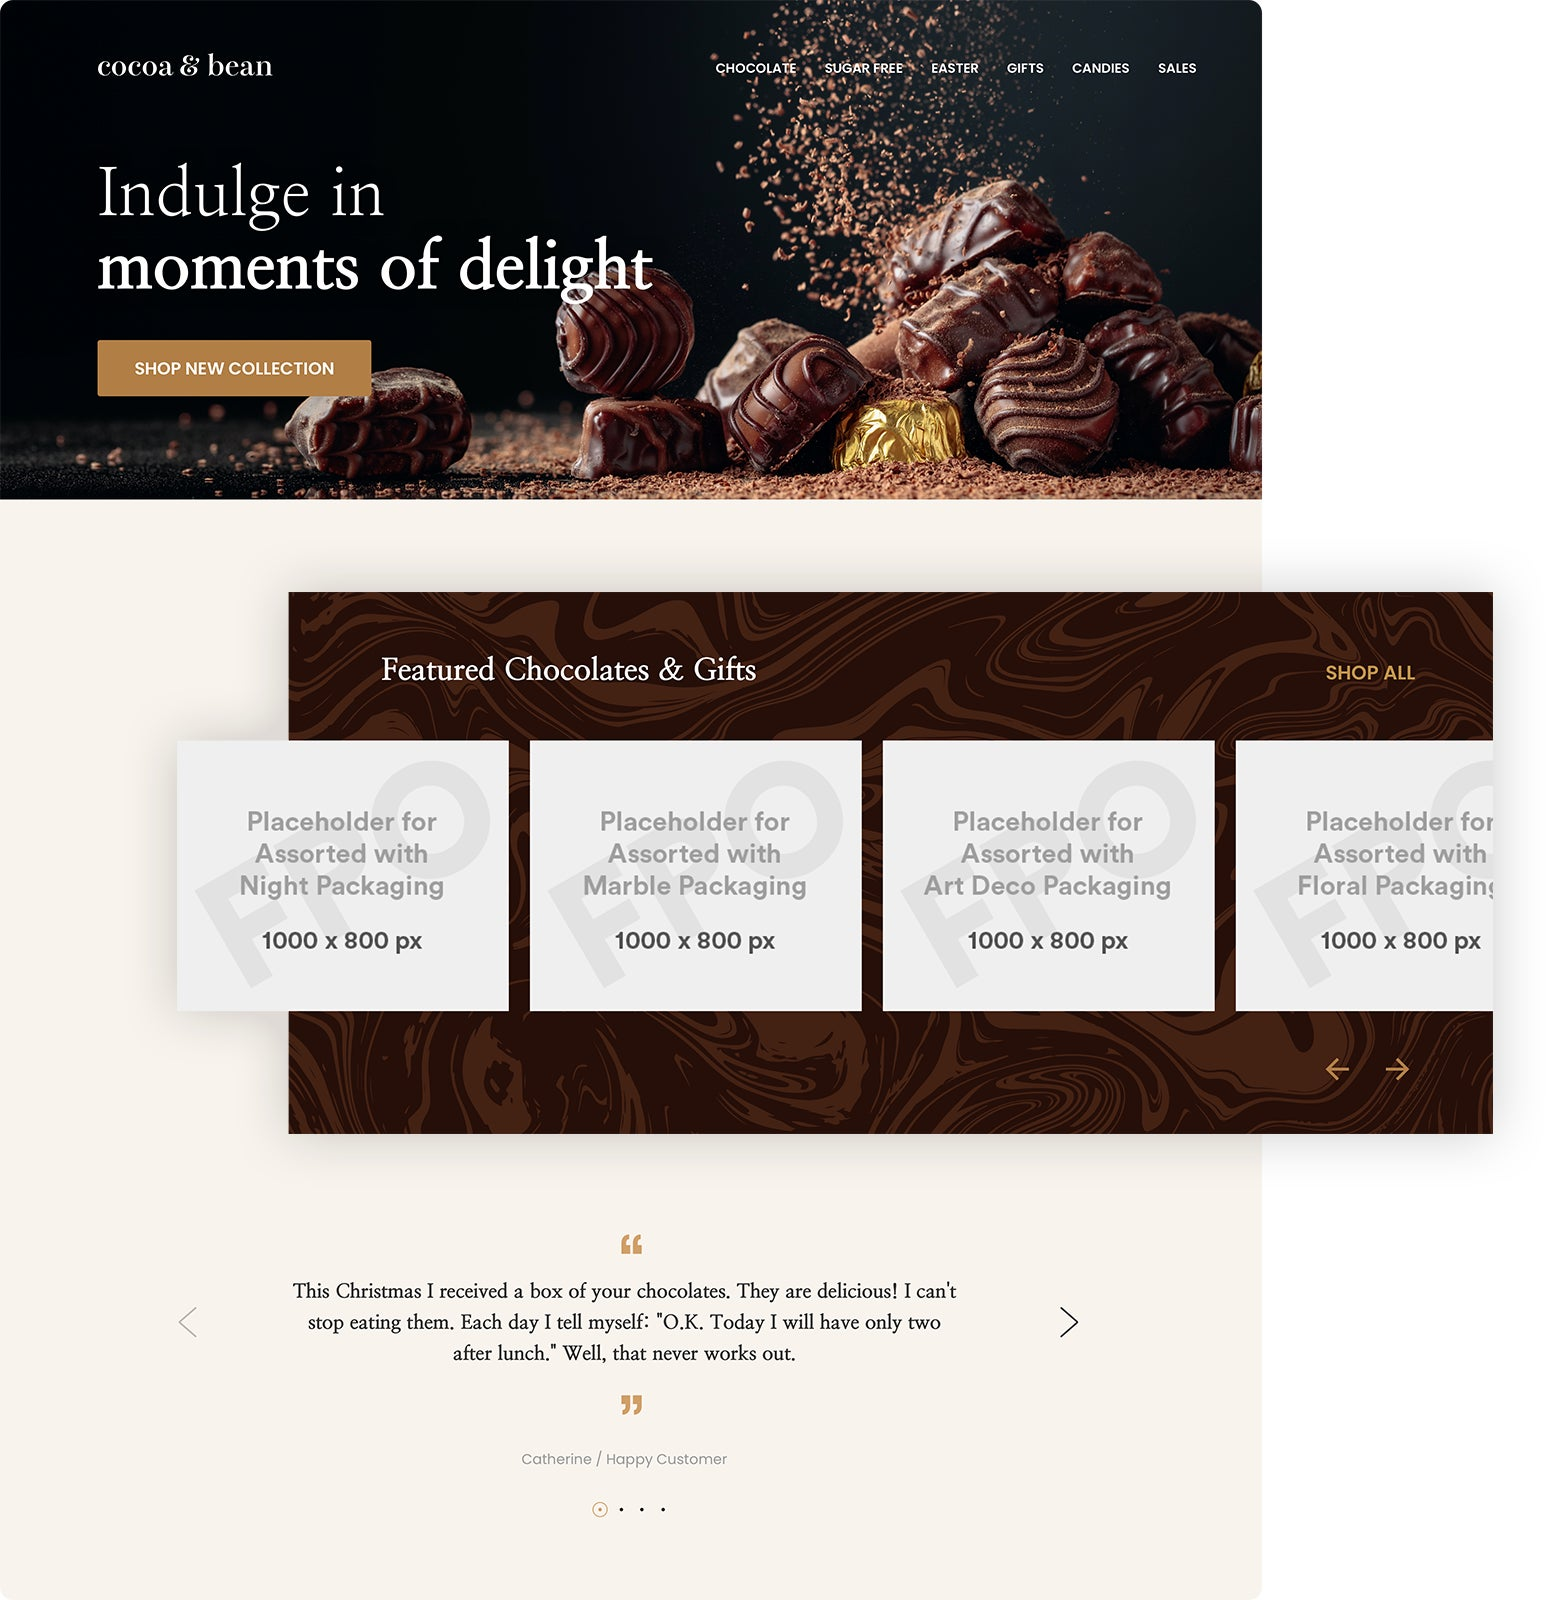 a chocolate e-commerce website displaying various placeholder images